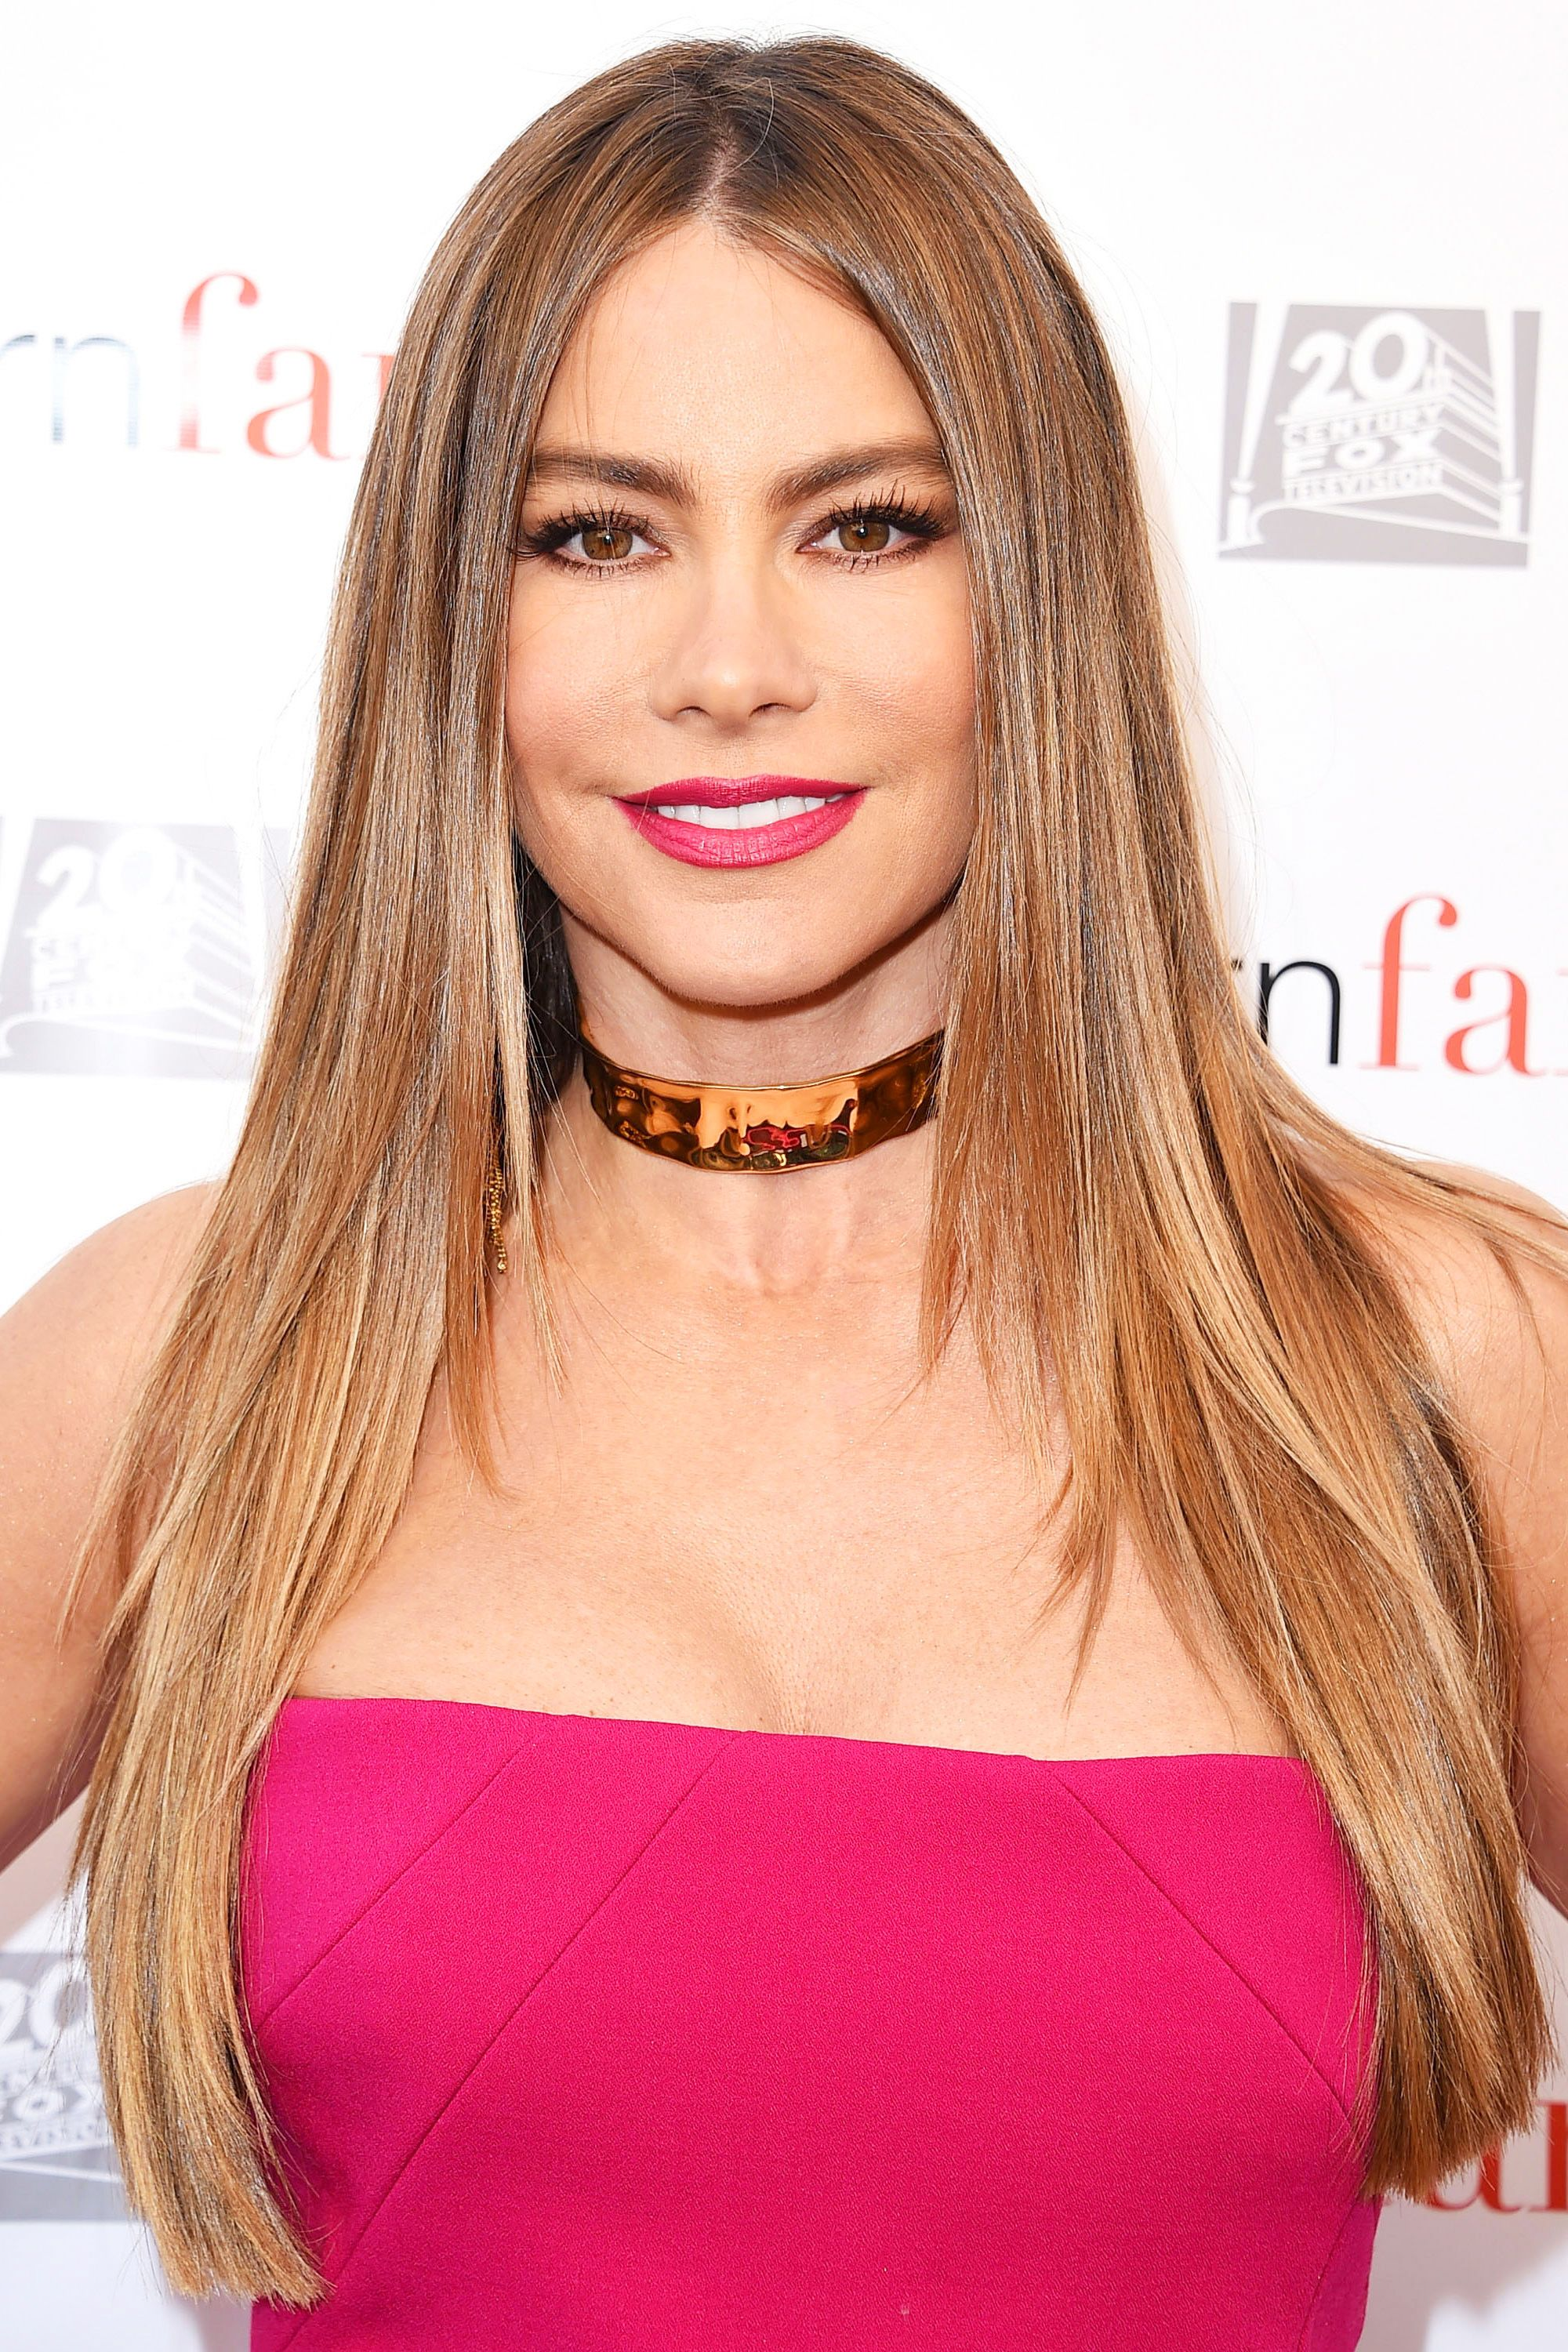 Hair highlight ideas for spring 2017 23 of the best highlights hair highlight ideas for spring 2017 23 of the best highlightsed hair colors in hollywood pmusecretfo Gallery